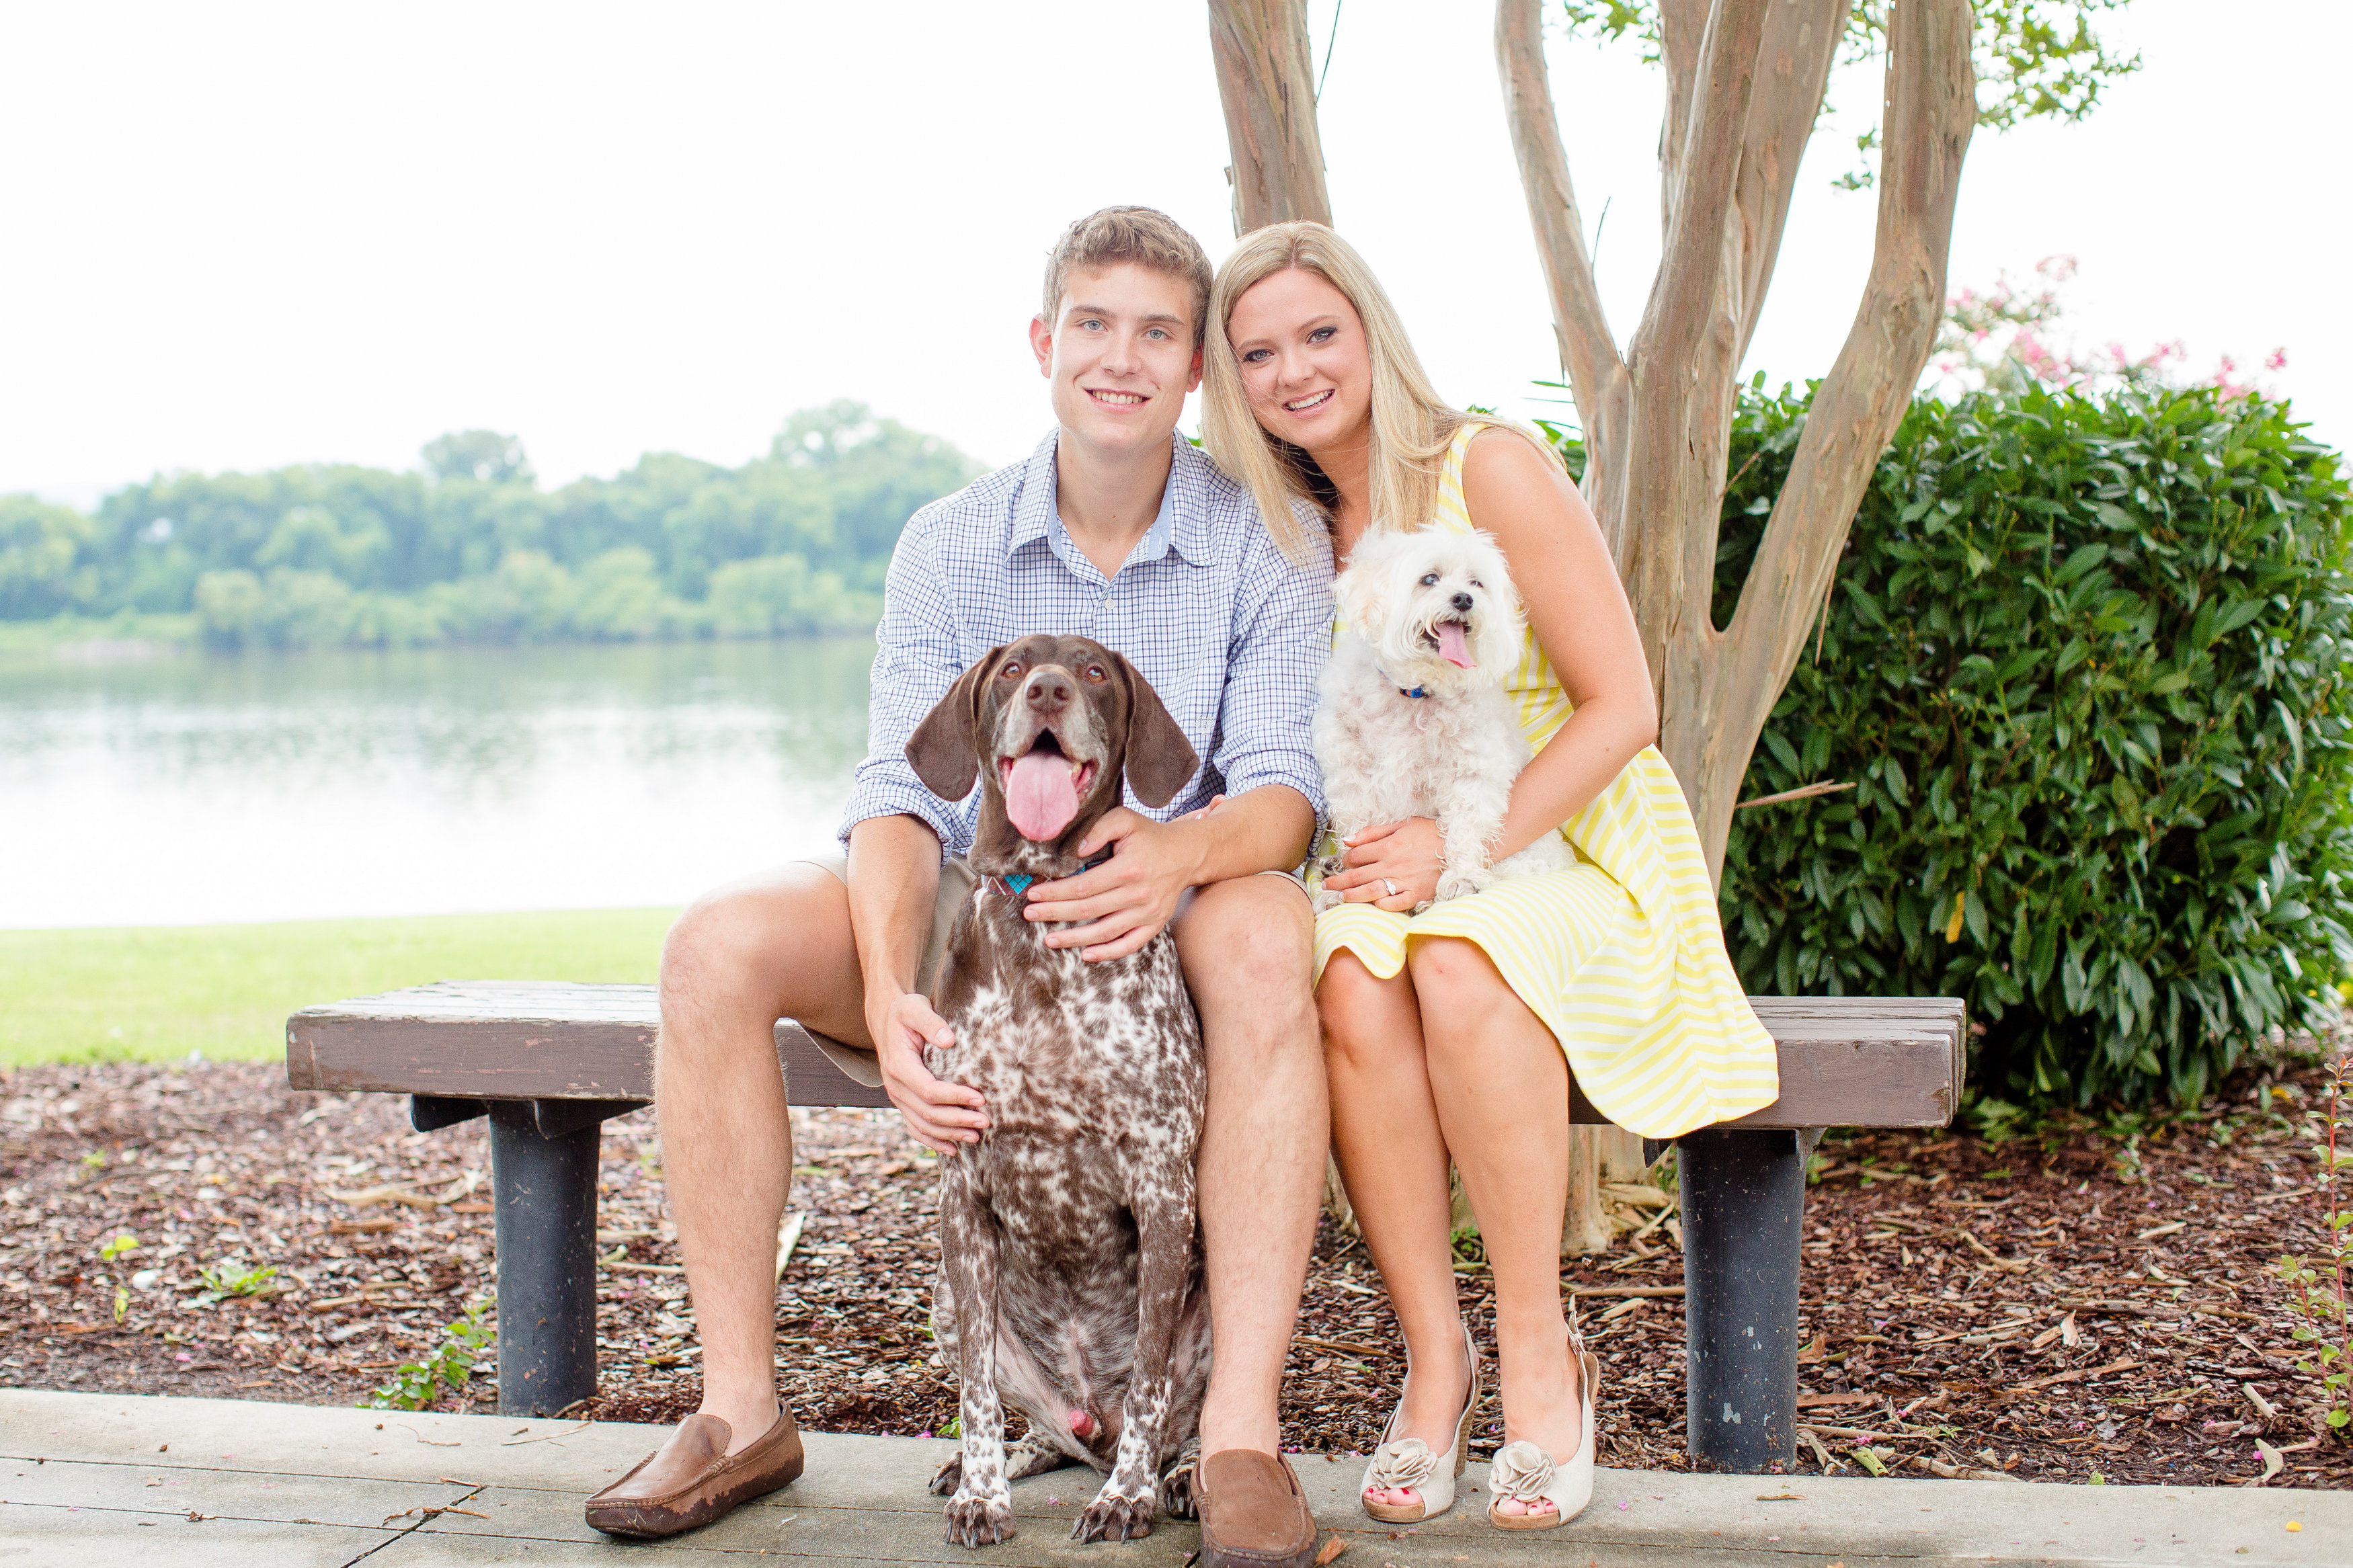 Higley Family Adoption is raising money on AdoptTogether for their adoption from United States.